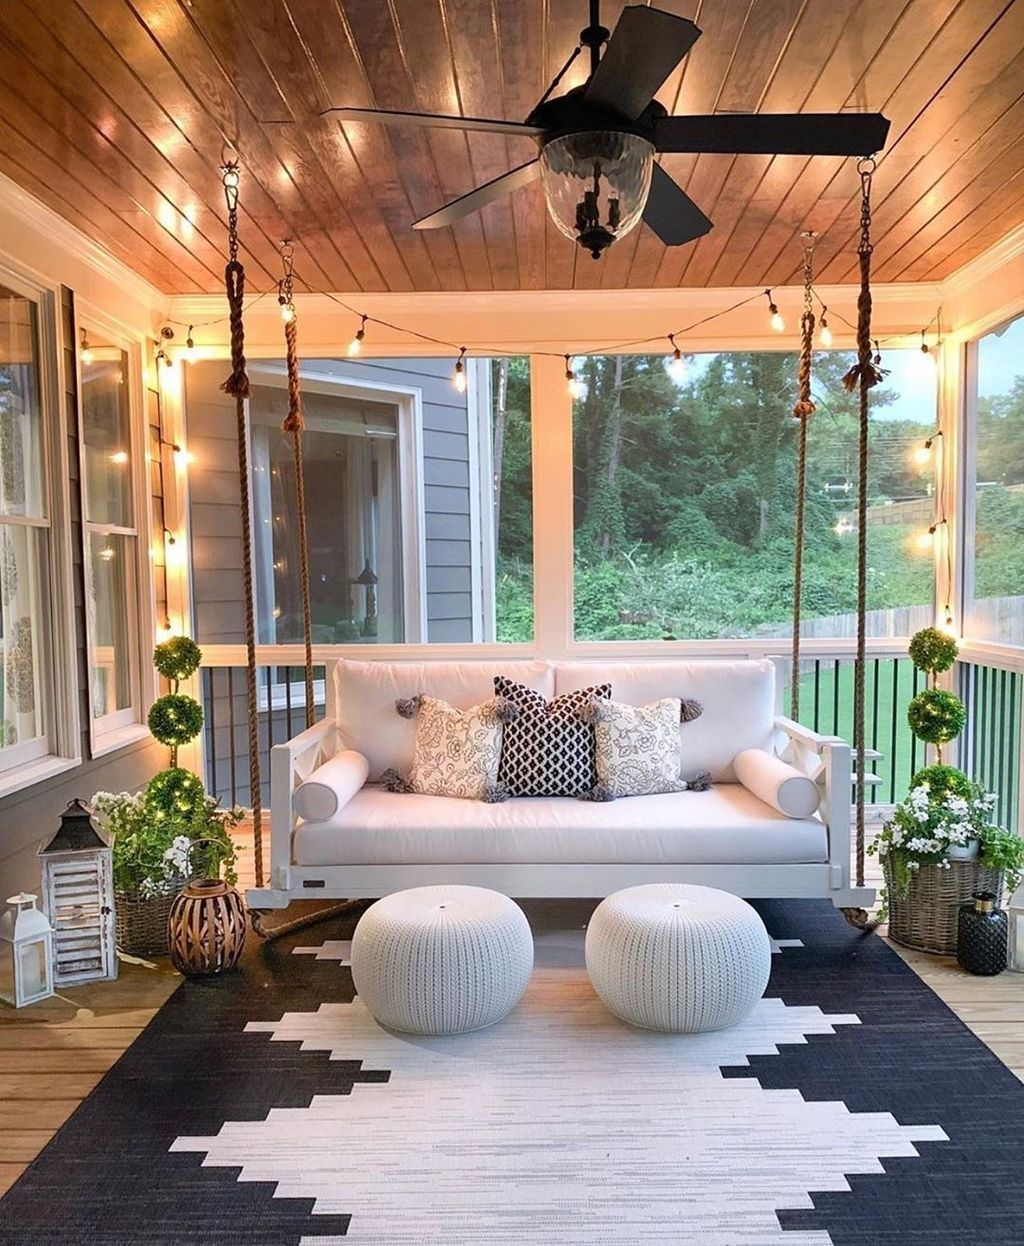 40+ Cool Home Interior Design Ideas You Must Try Asap